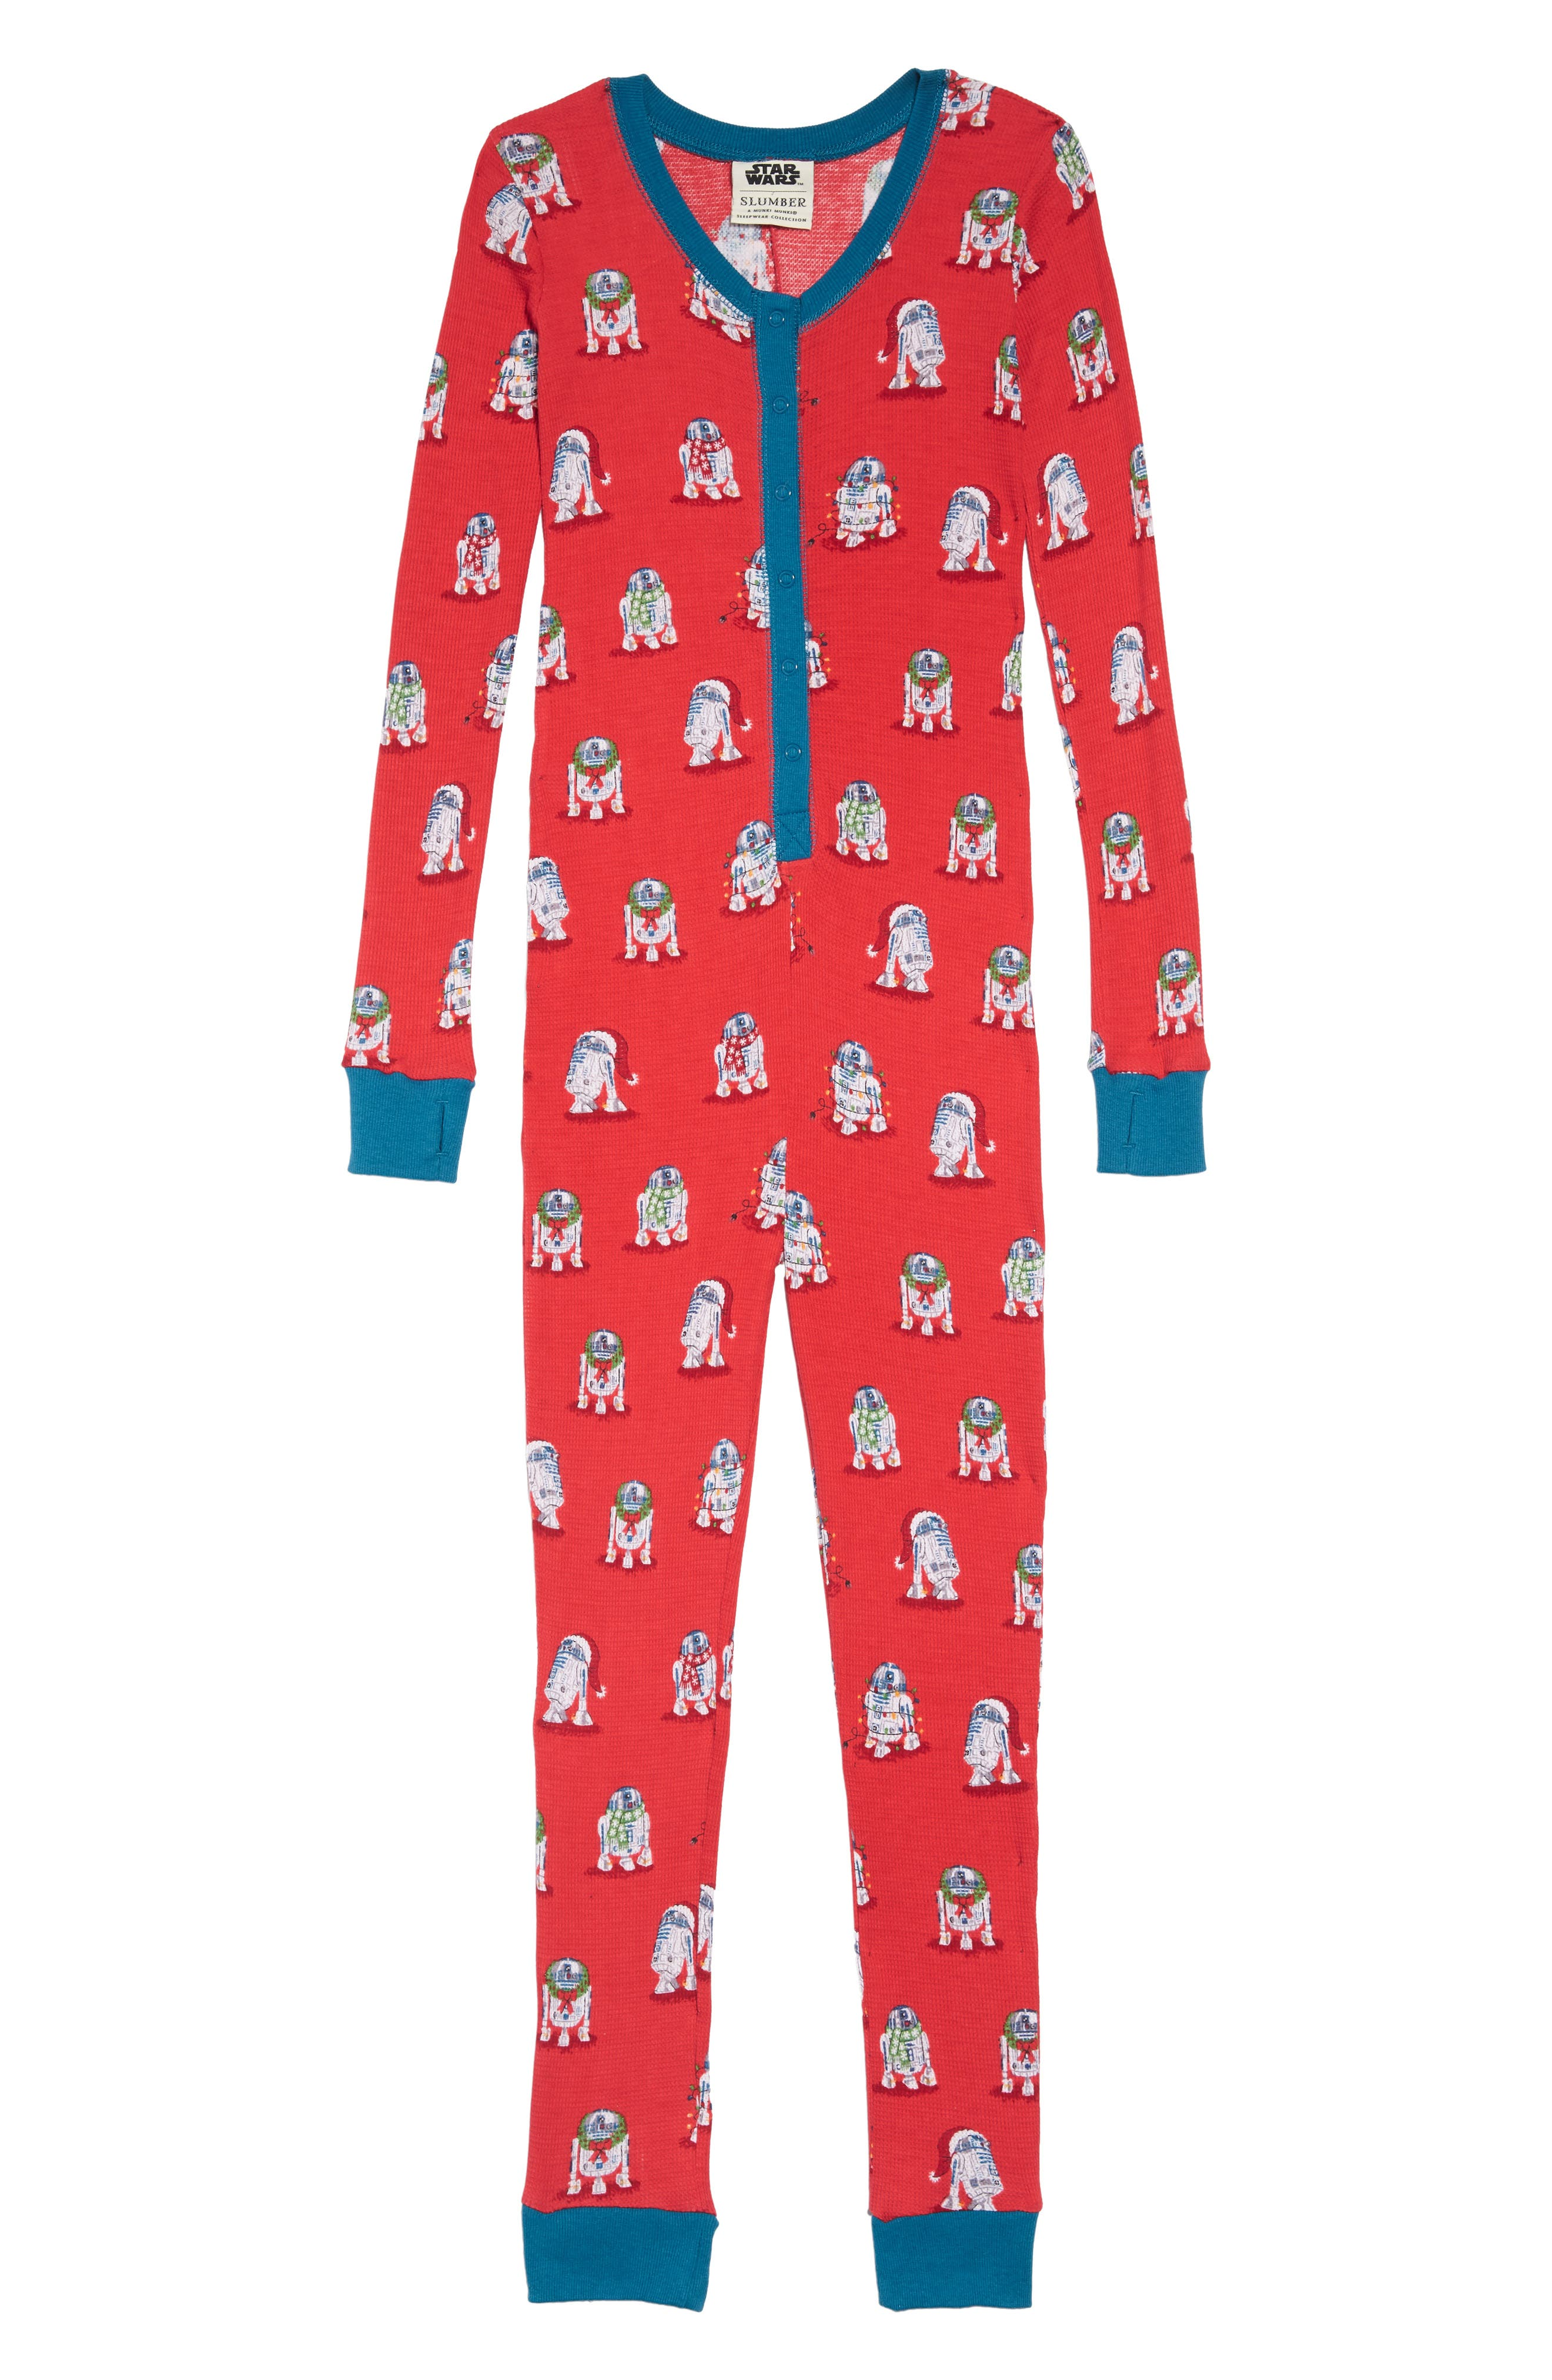 x Star Wars<sup>™</sup> Christmas R2-D2 Fitted One-Piece Pajamas,                             Main thumbnail 1, color,                             600